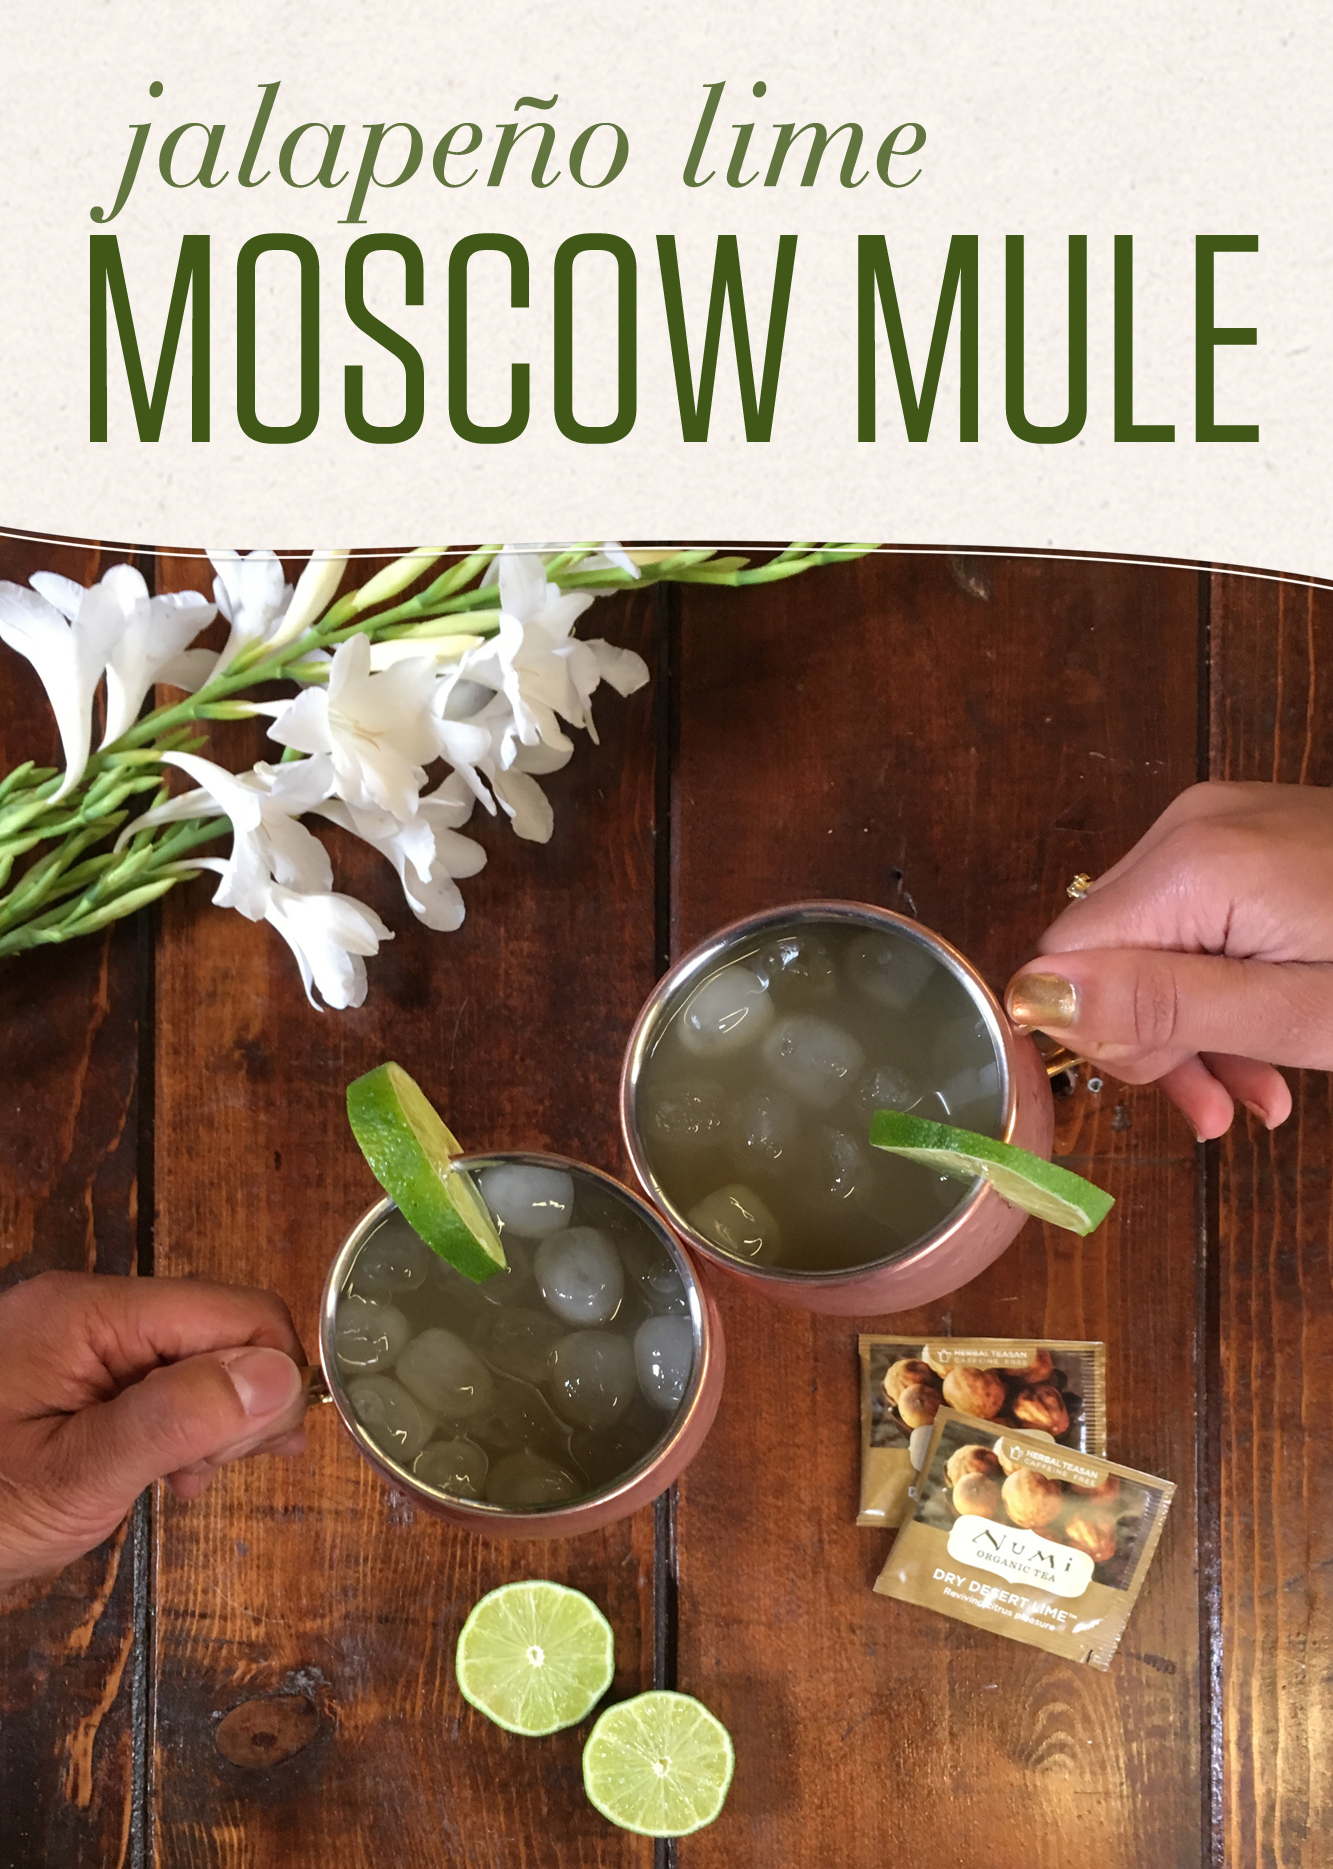 Kickin' Moscow Mule with Jalapeño Lime Infused Vodka